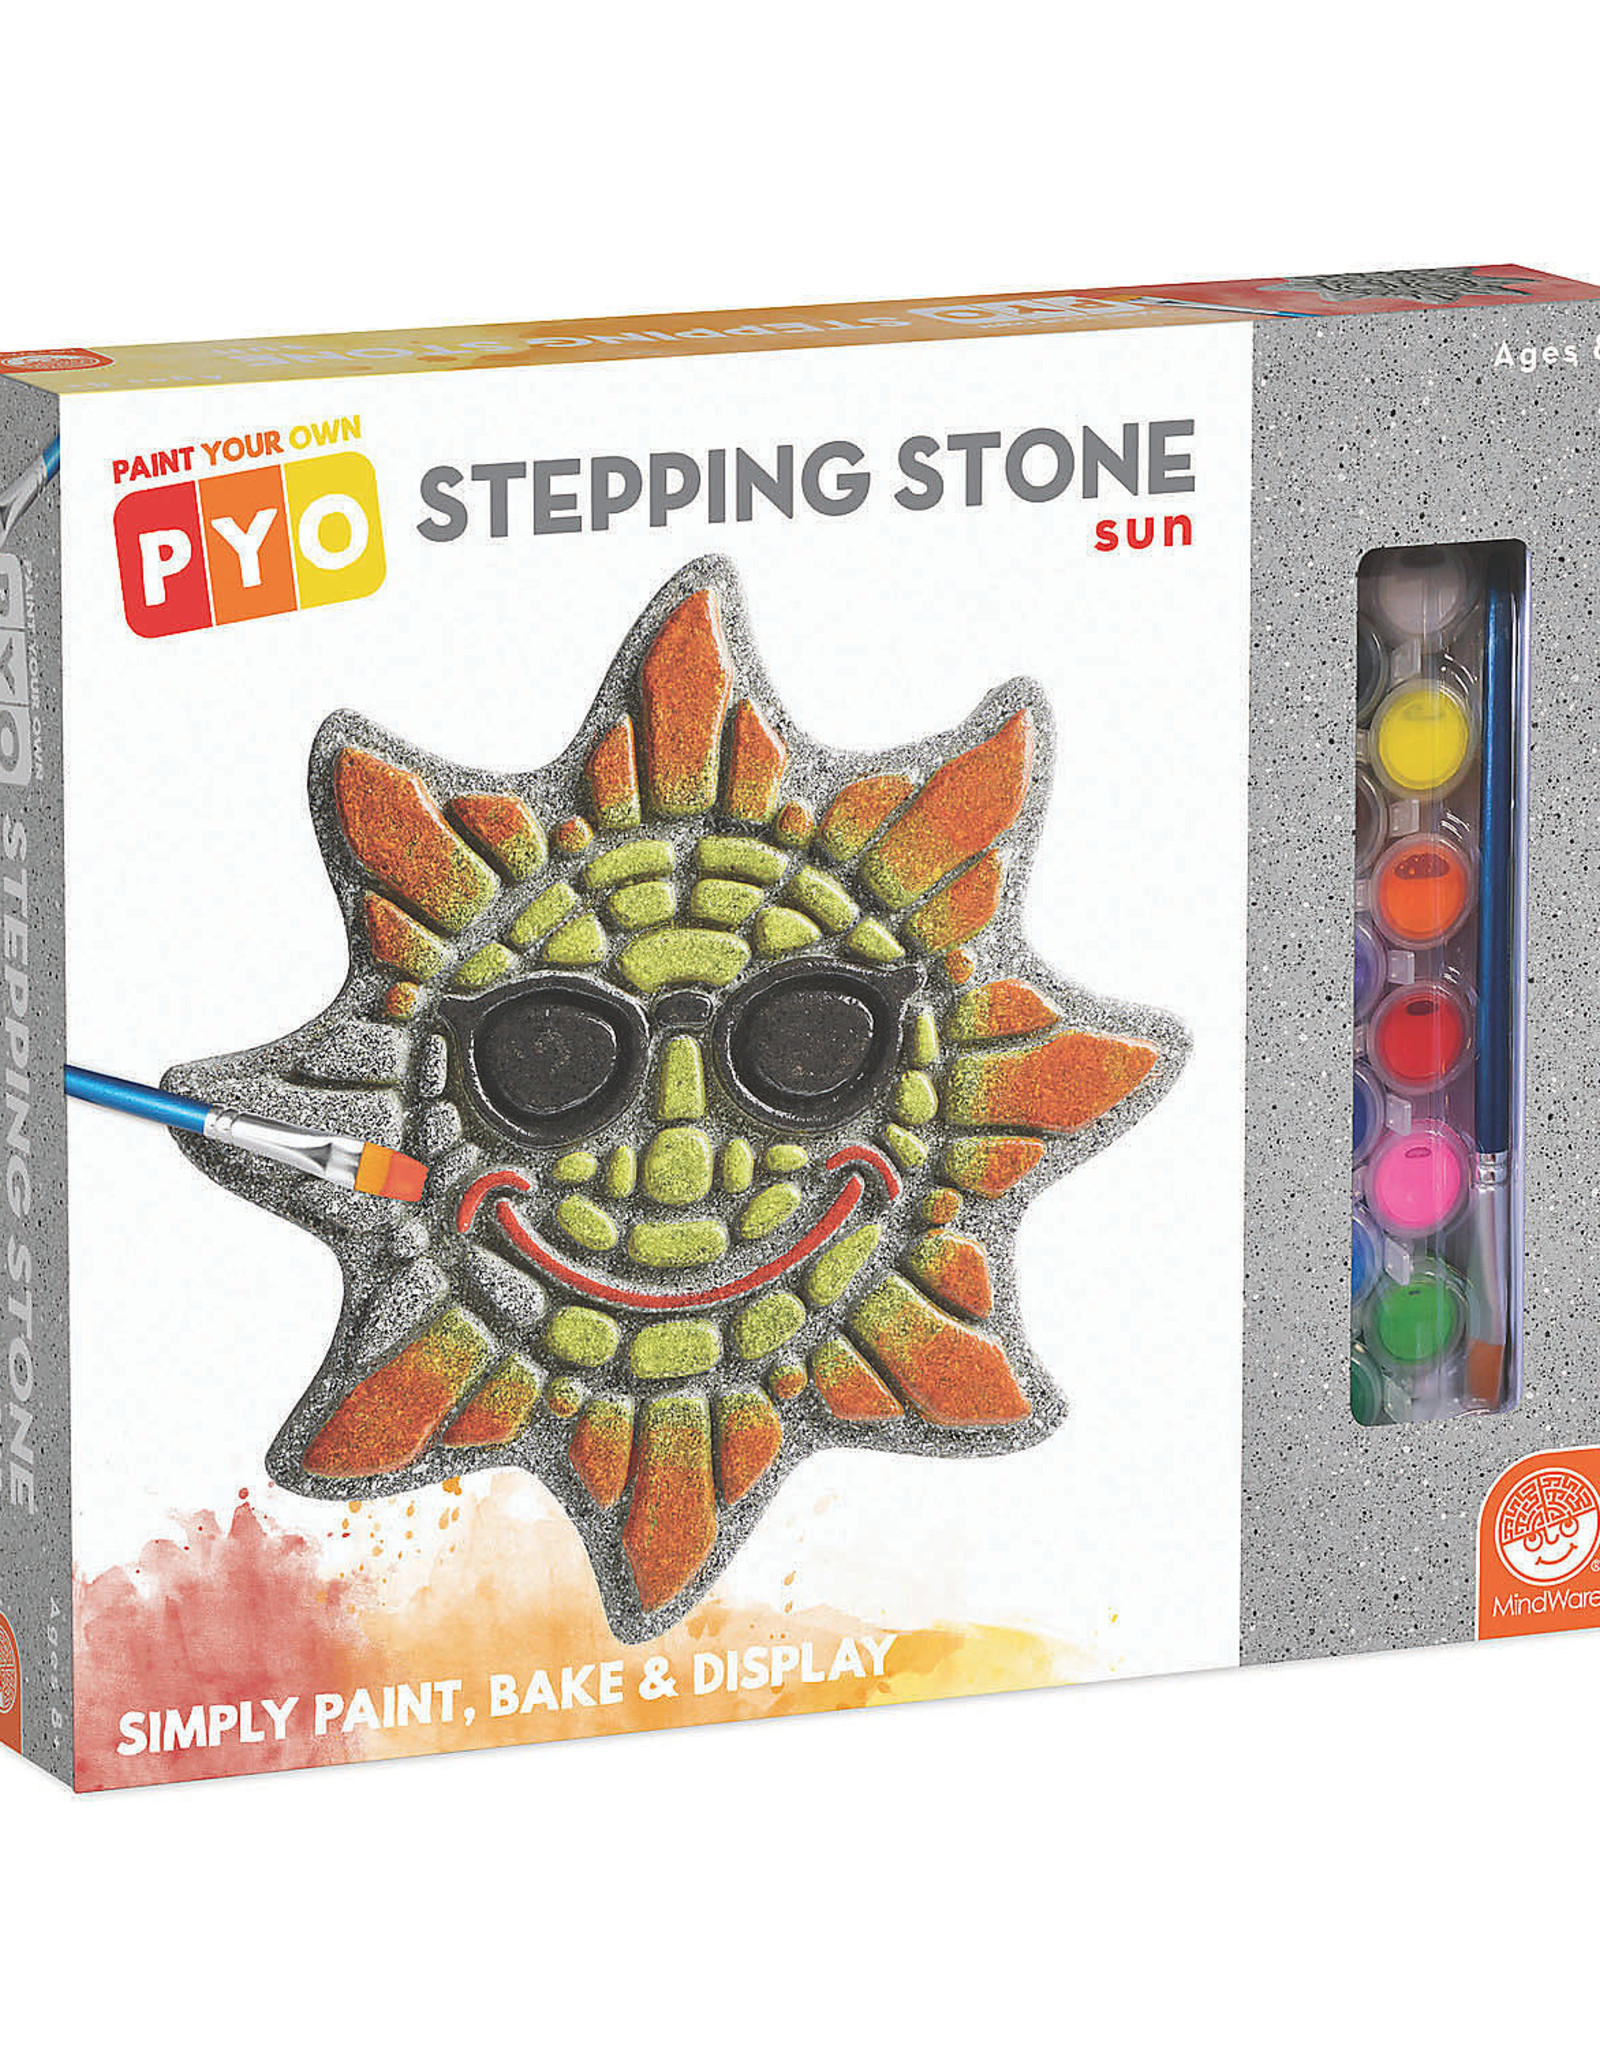 MindWare Paint Your Own Stepping Stone - Sun